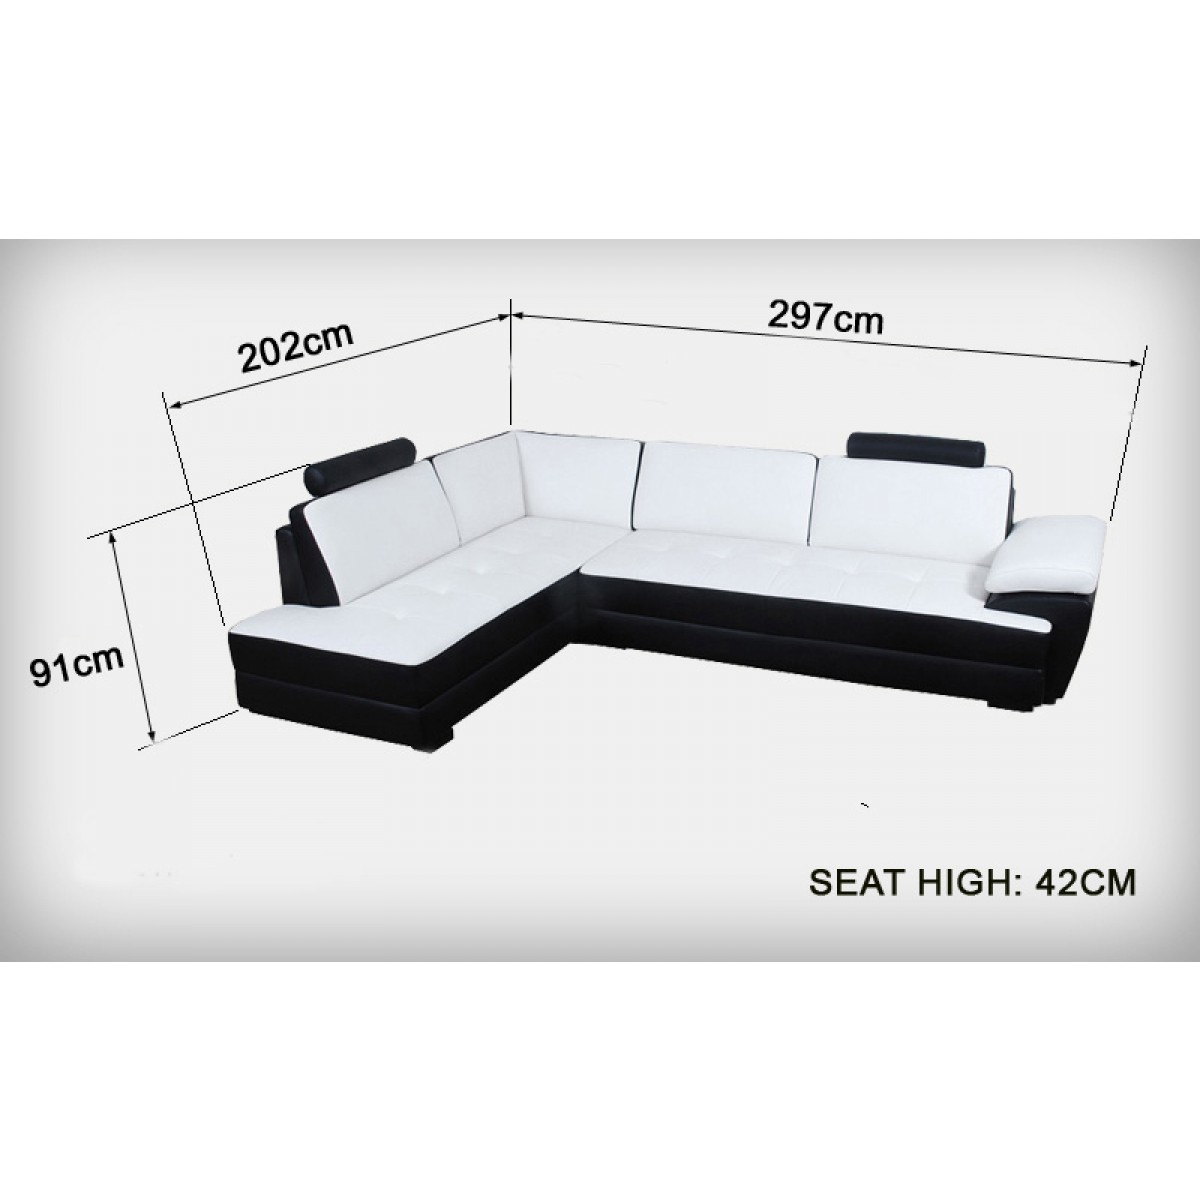 canap d 39 angle en cuir gemma canap s d 39 angle en cuir. Black Bedroom Furniture Sets. Home Design Ideas